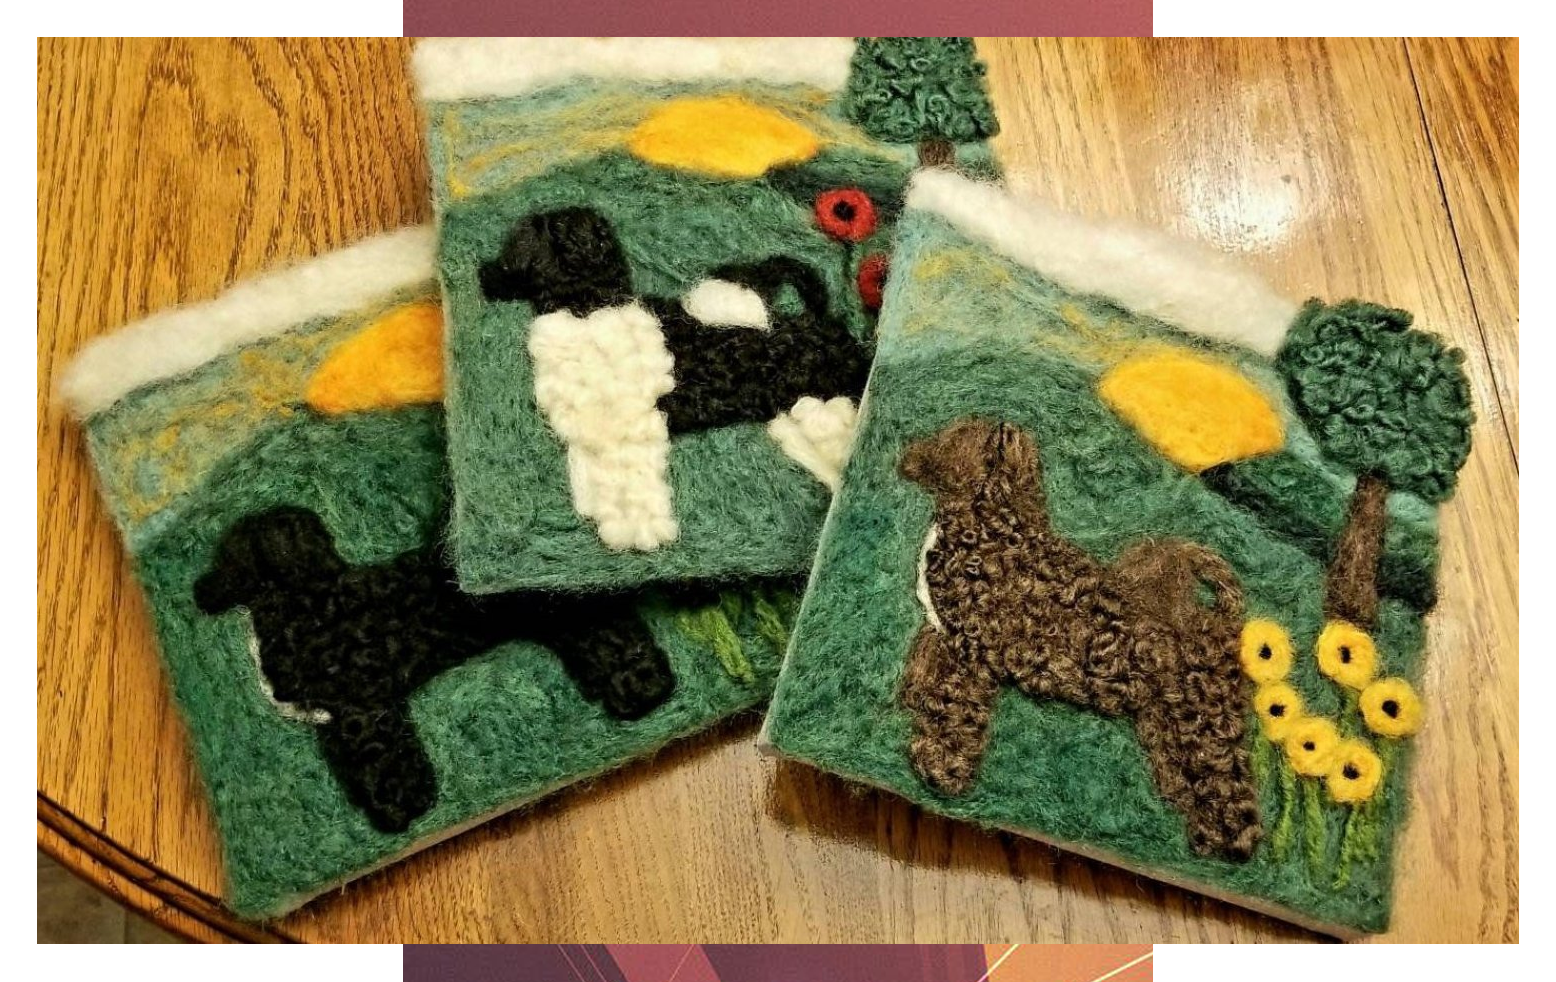 Portuguese Water Dog Wool Fiber Art Custom Picture with Sunset Landscape, Needle Felted Art #Portuguese #Water #Dog #Wool #Fiber #Art #Custom #Picture #with #Sunset #Landscape, #Needle #Felted #Art